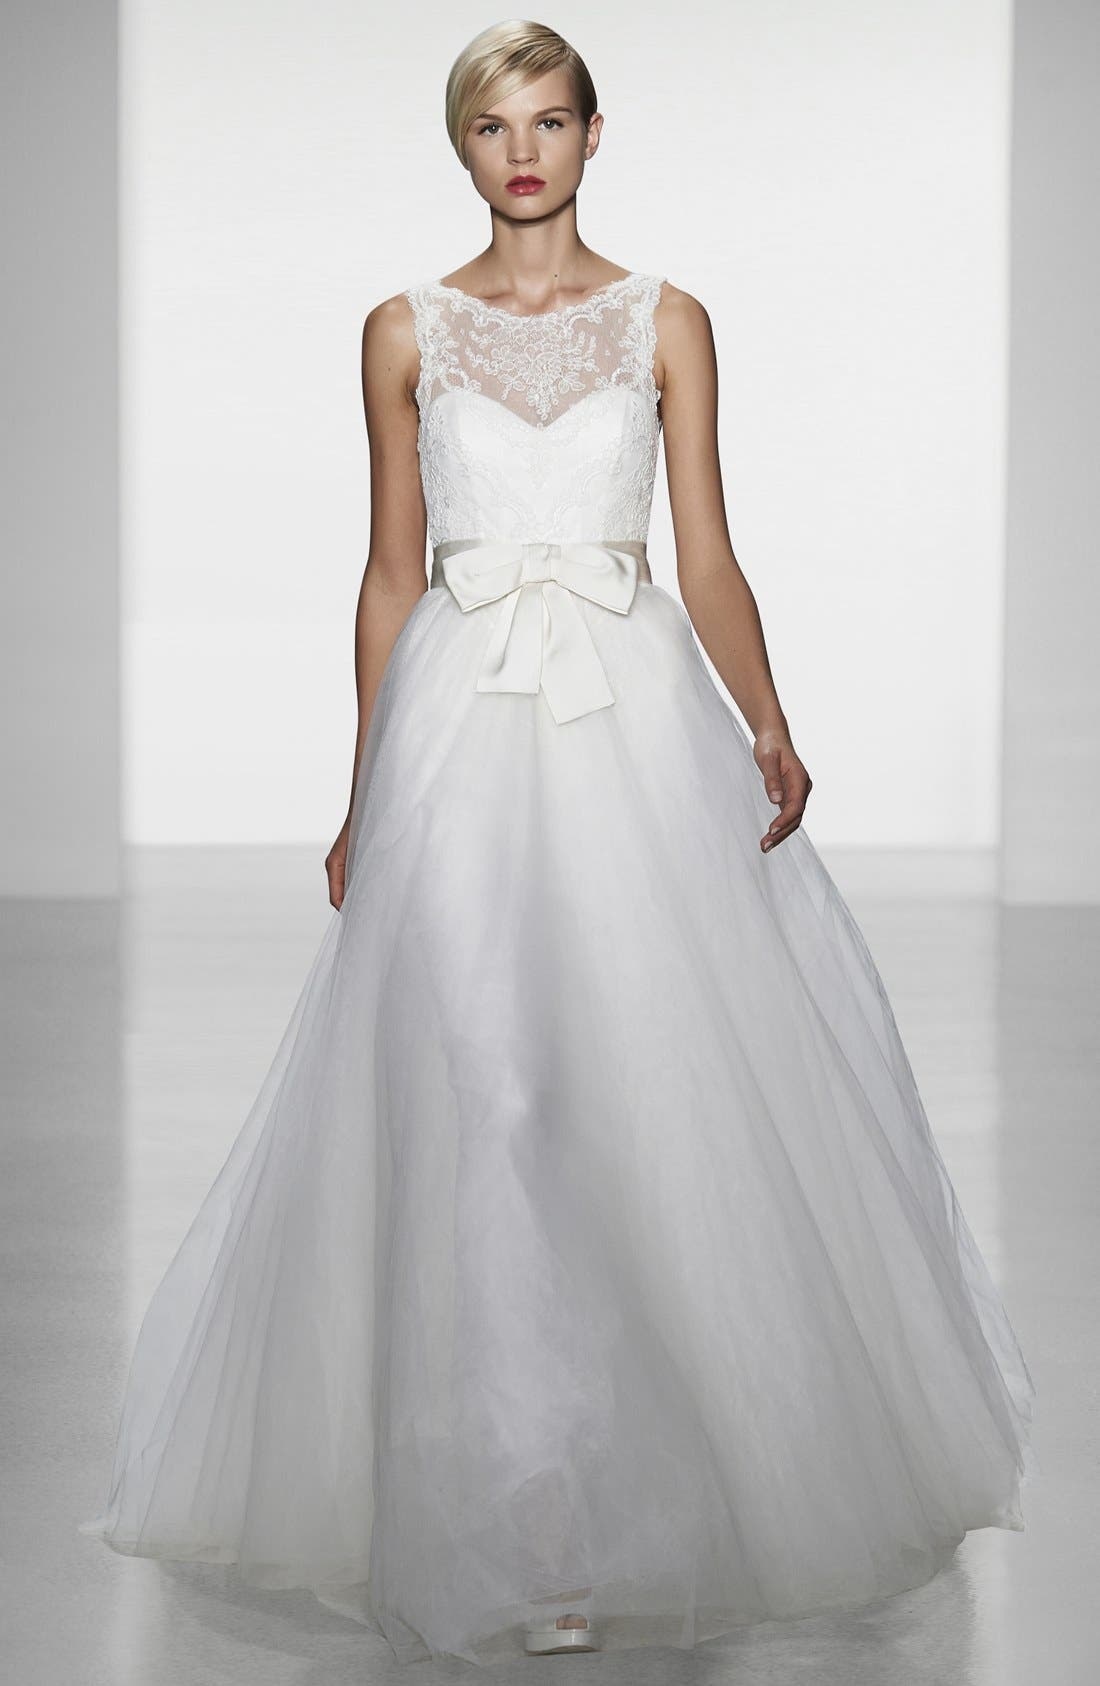 AMSALE, Quinn French Lace Illusion Bodice Tulle Wedding Dress, Alternate thumbnail 6, color, 900